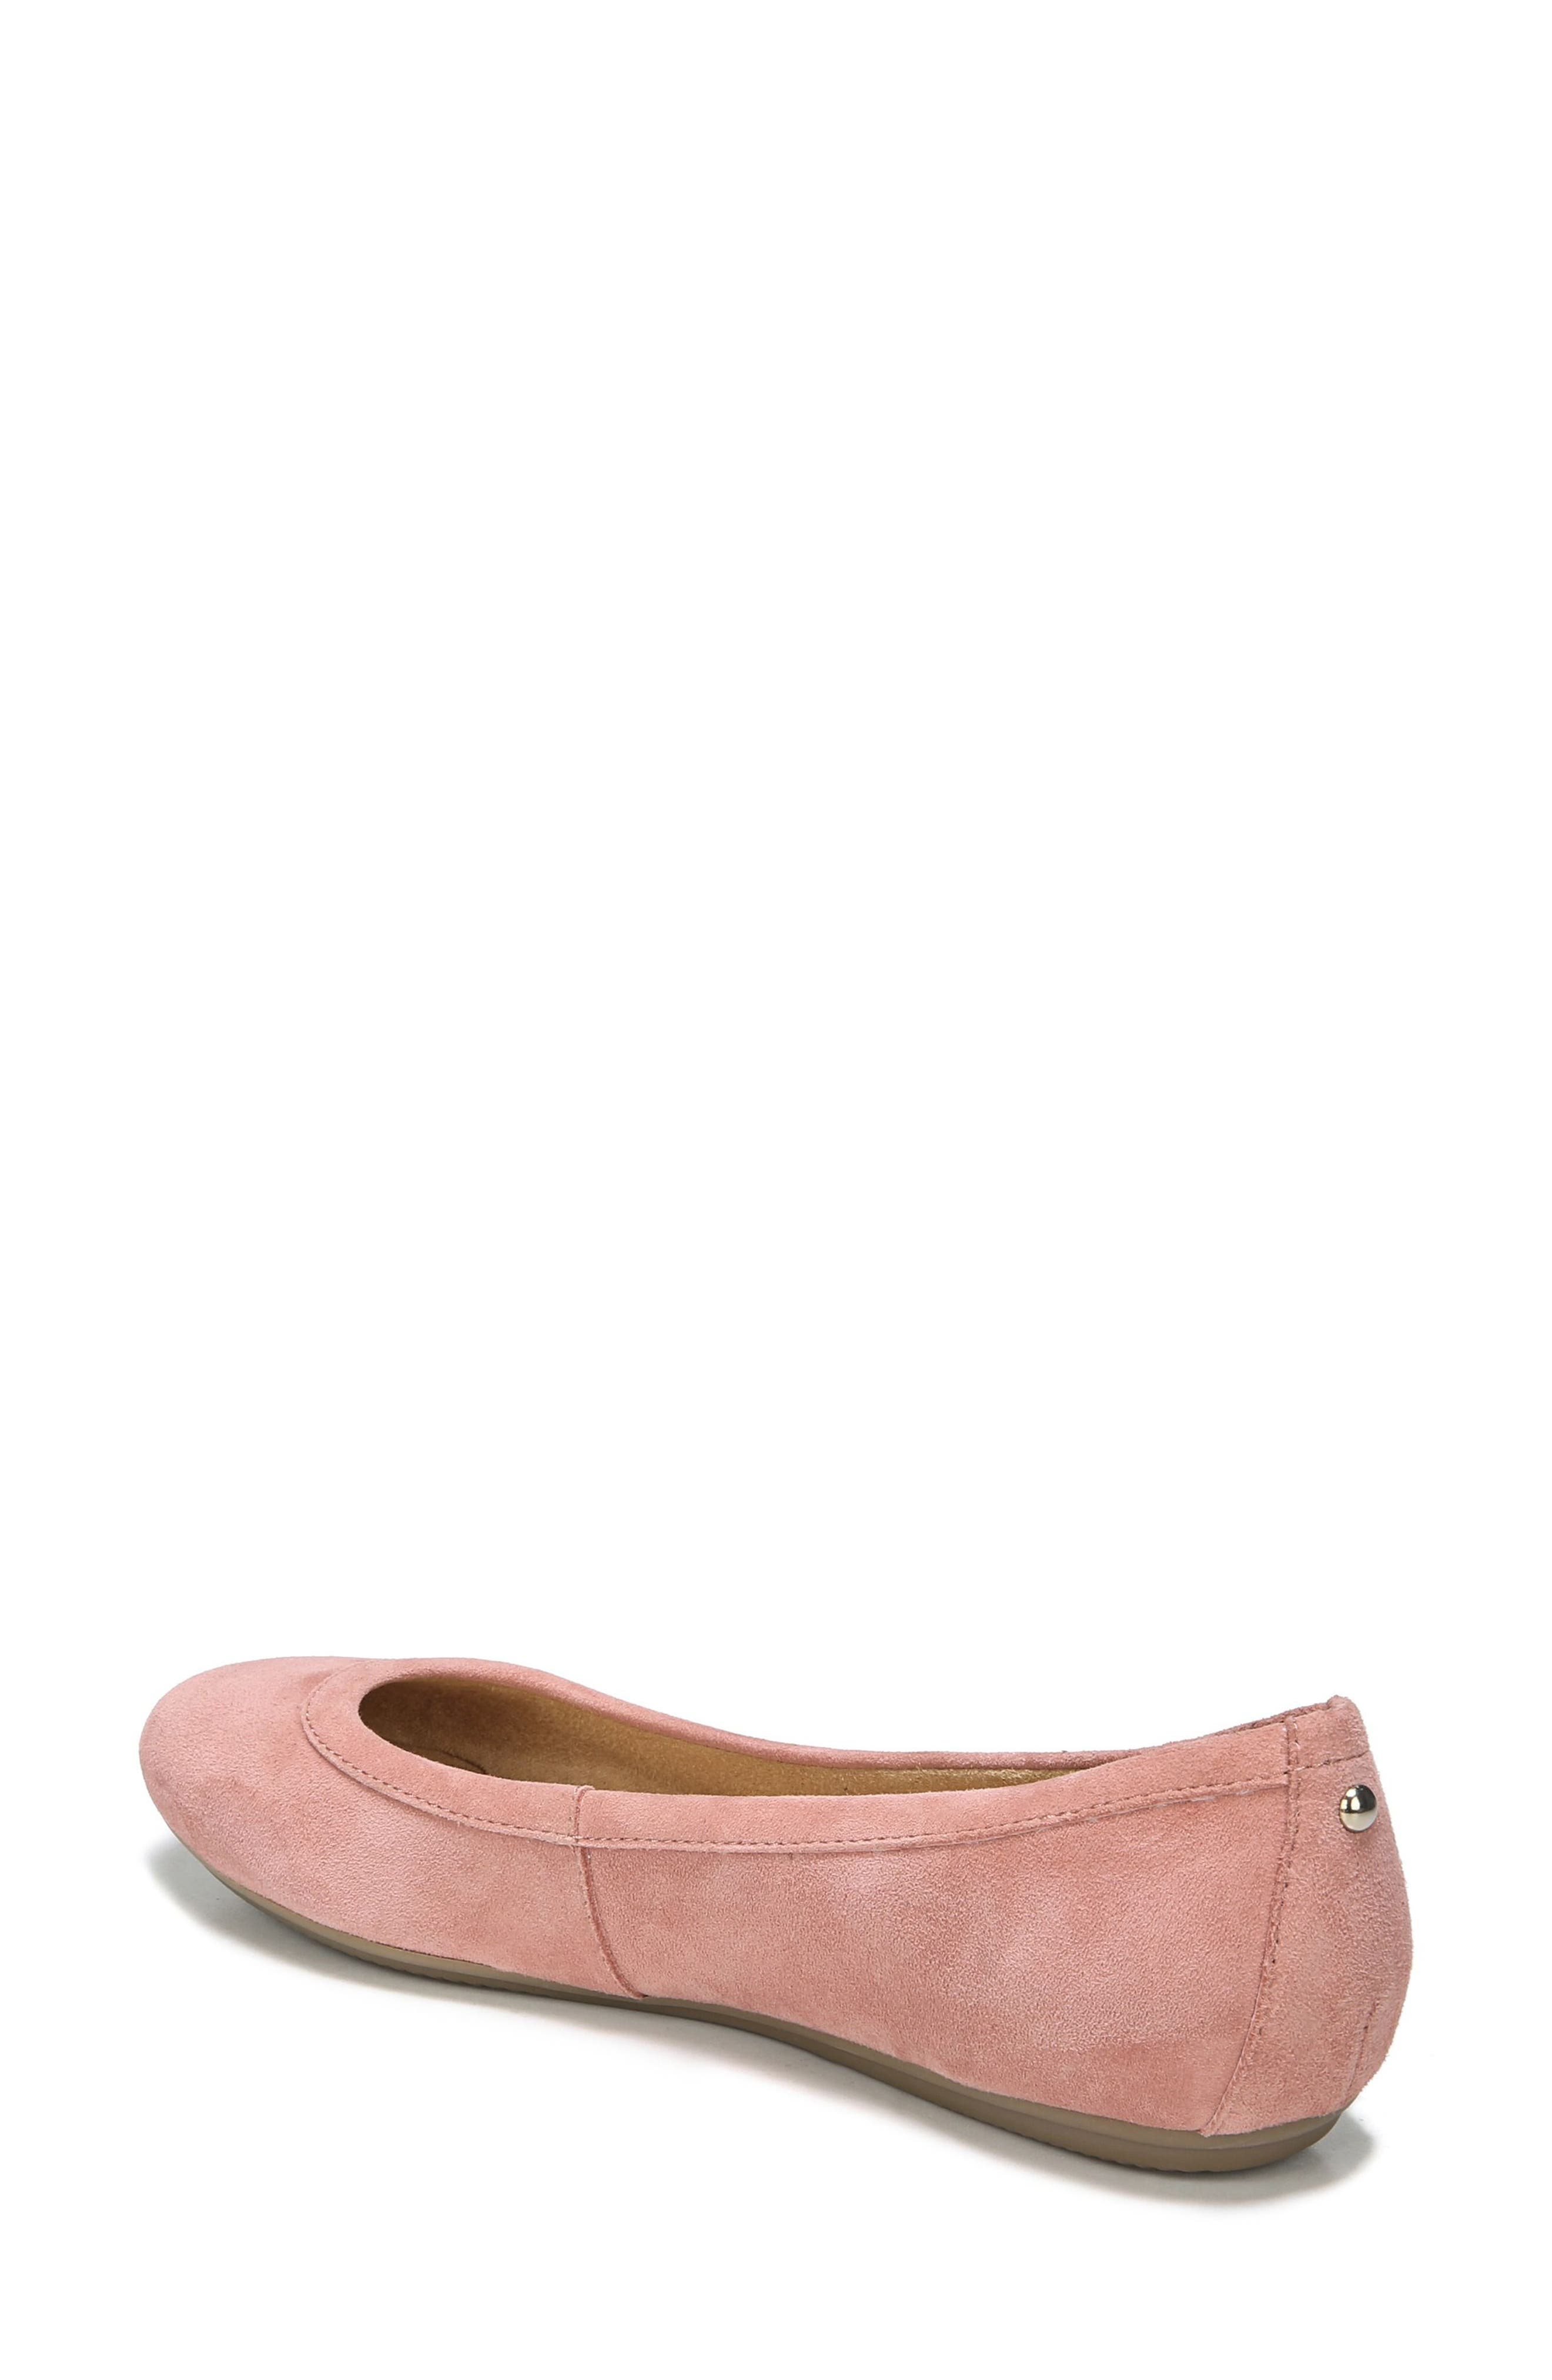 NATURALIZER, Brittany Ballet Flat, Alternate thumbnail 2, color, PEONY PINK SUEDE